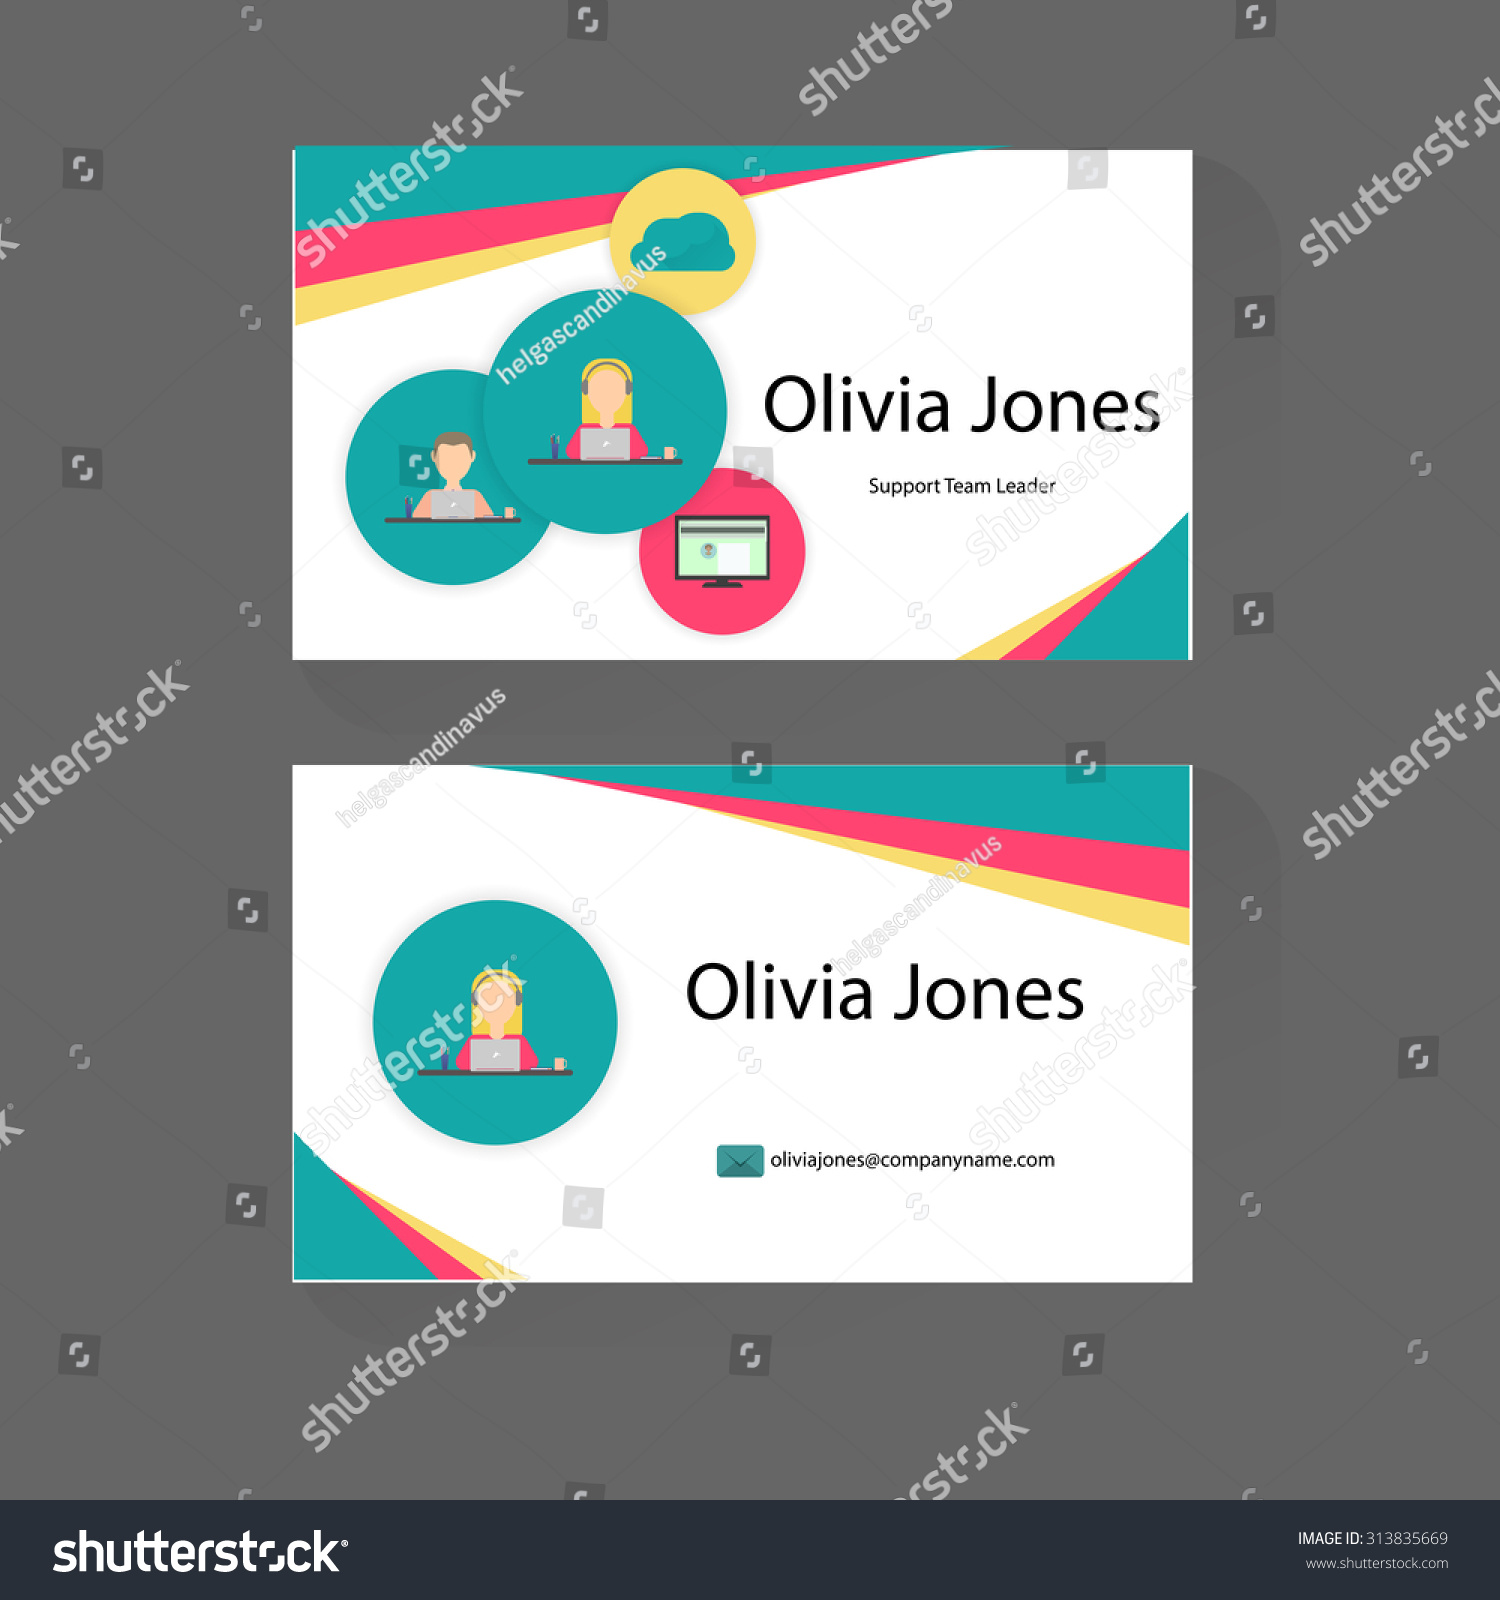 Business Card Trendy Flat Design Icons Stock Vector 313835669 ...